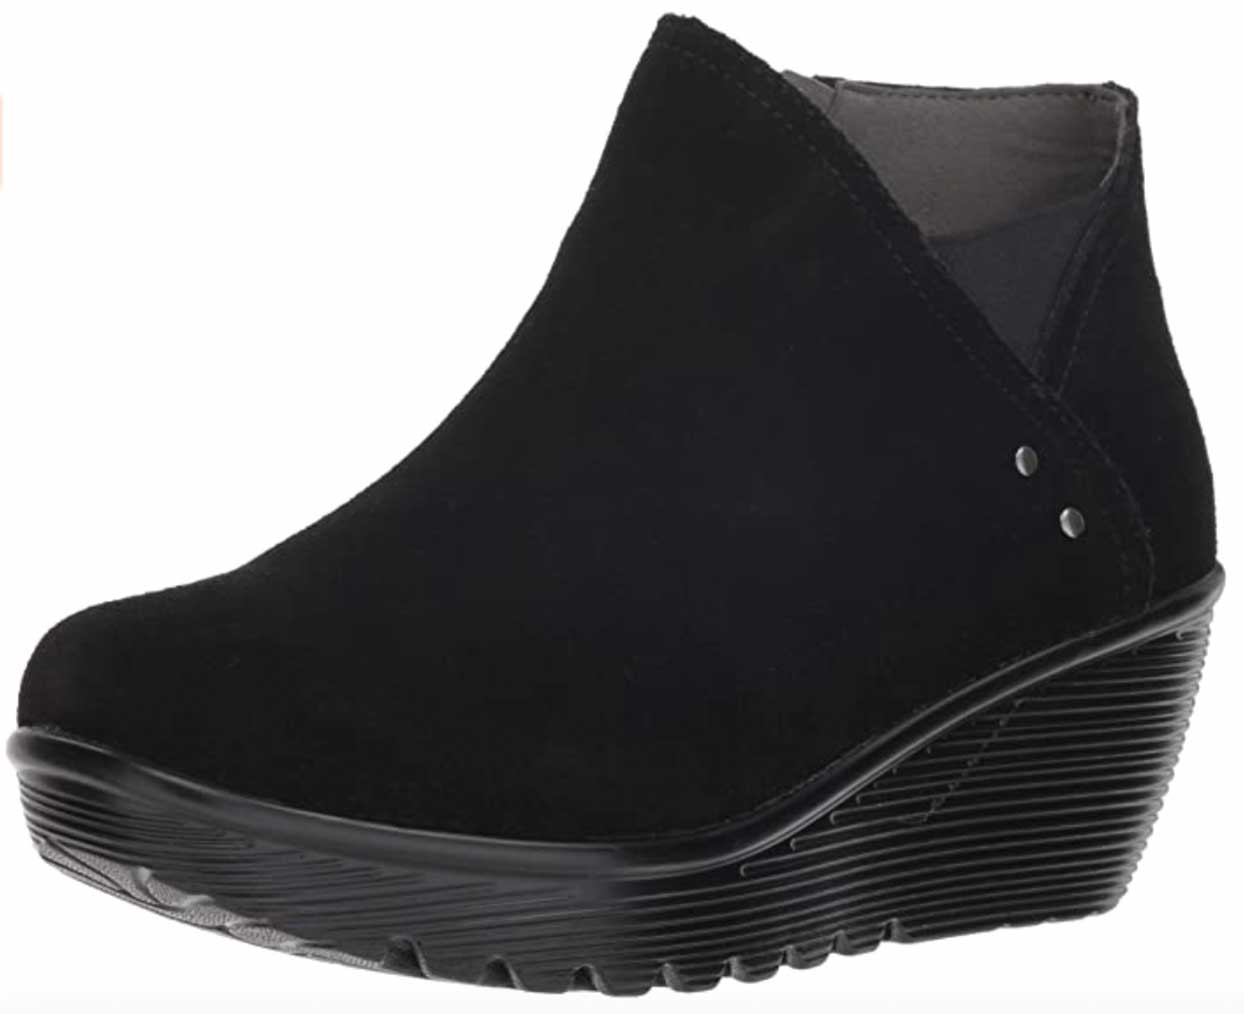 Skechers Parallel Suede Wedge Ankle Bootie